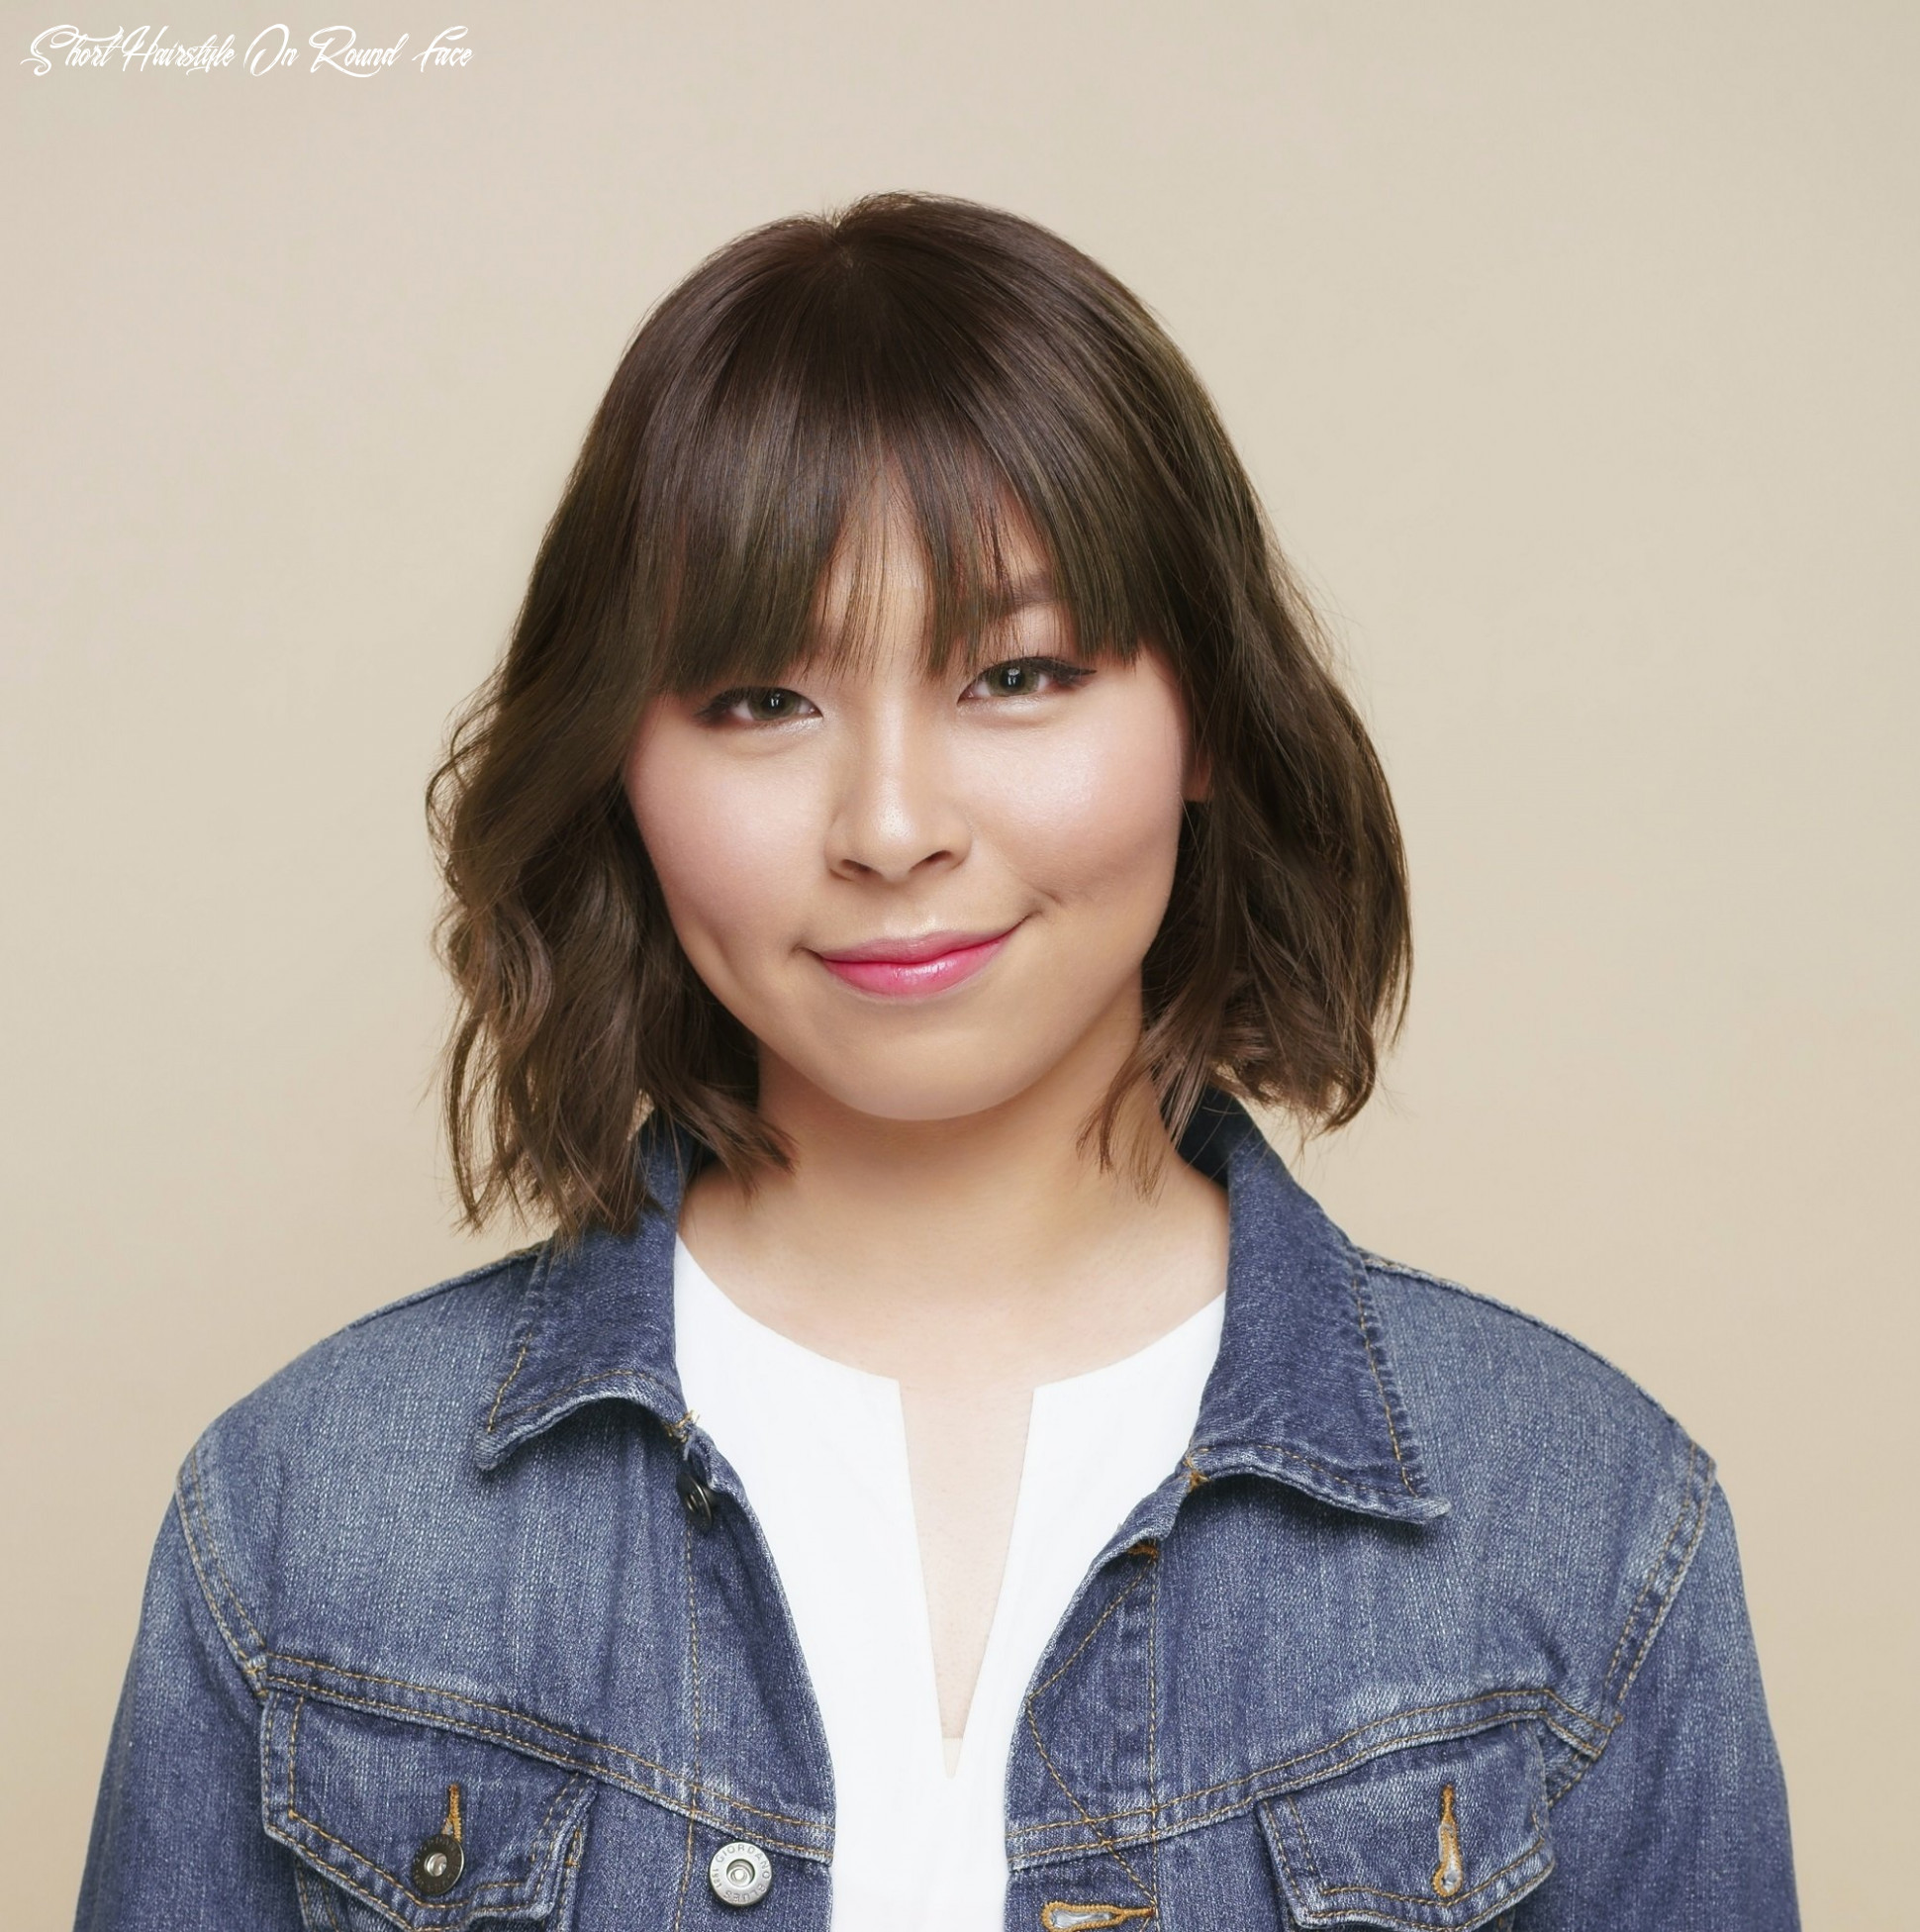 Short Hair for Round Face: 10 Stylish Ideas for 10 | All Things ...